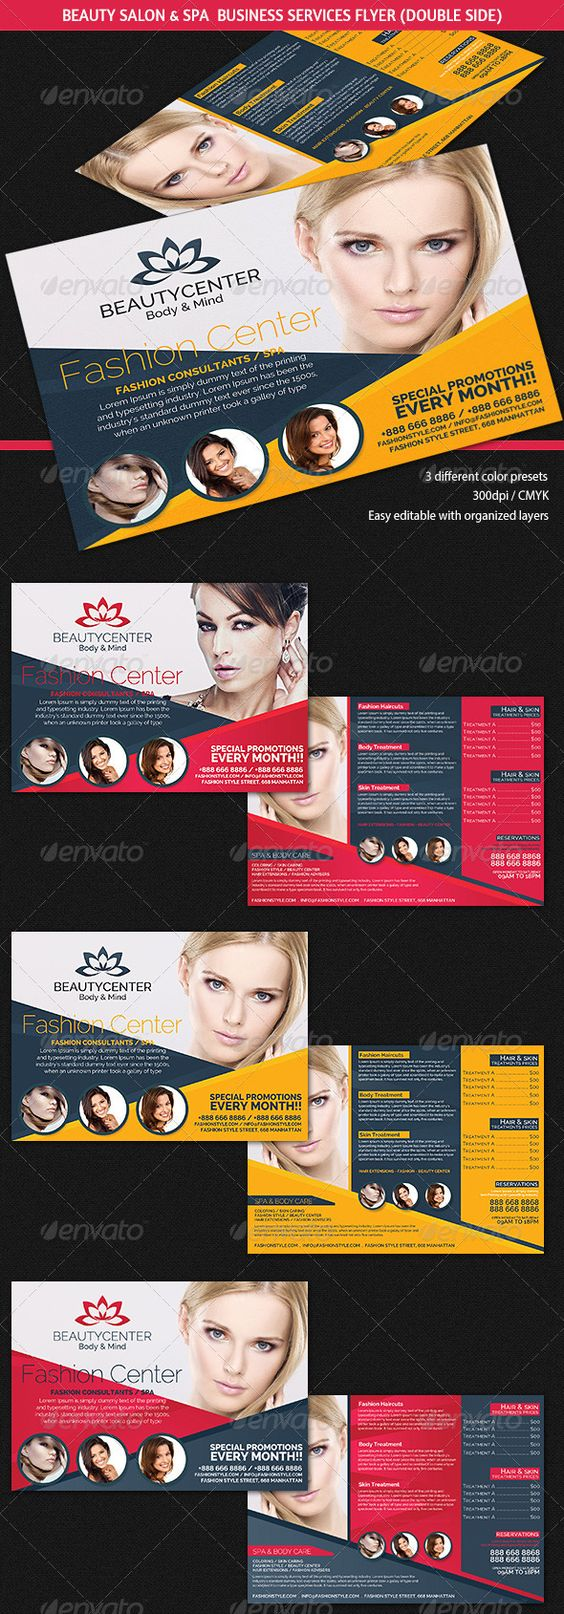 Flyers Business Flyer And Spas On Pinterest